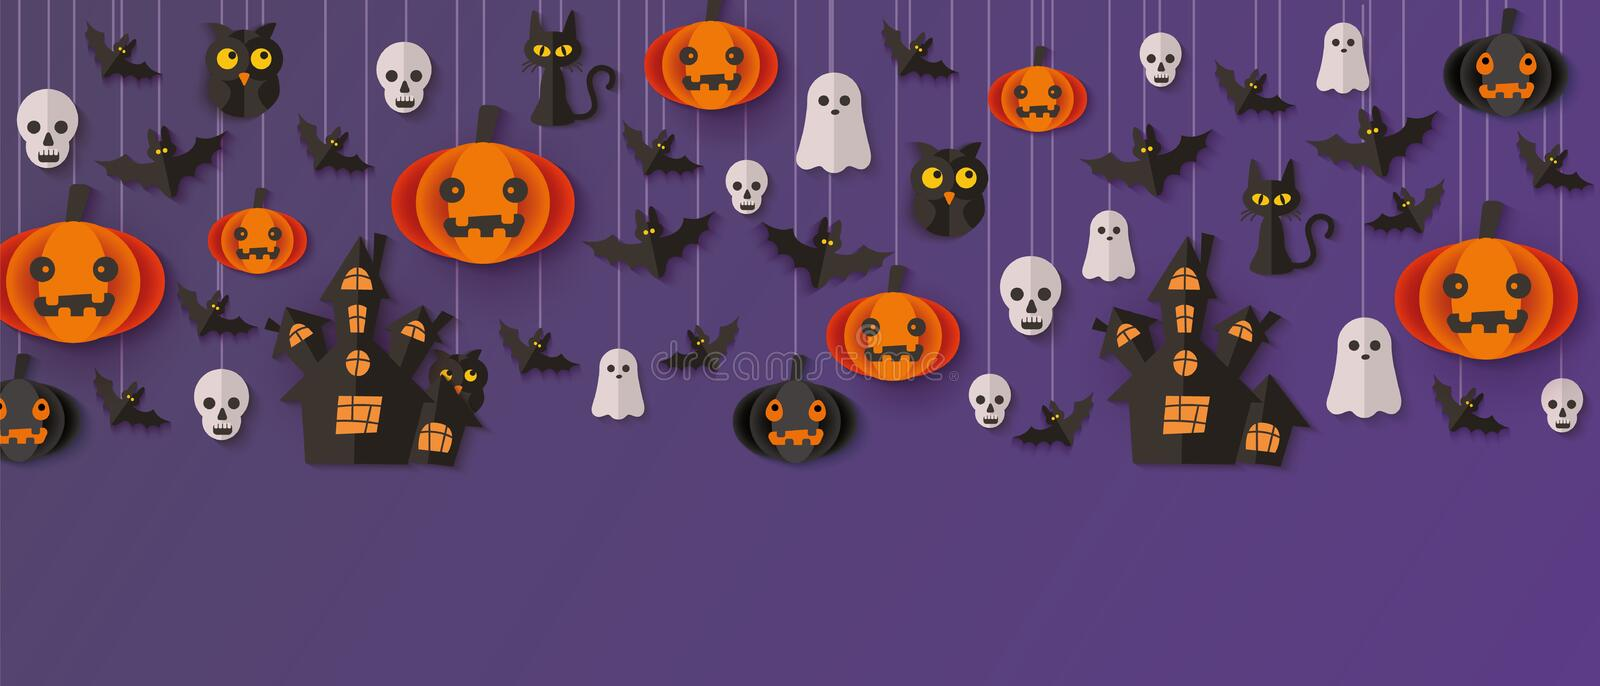 Halloween party decoration element hanging from above - cartoon holiday banner 向量例证